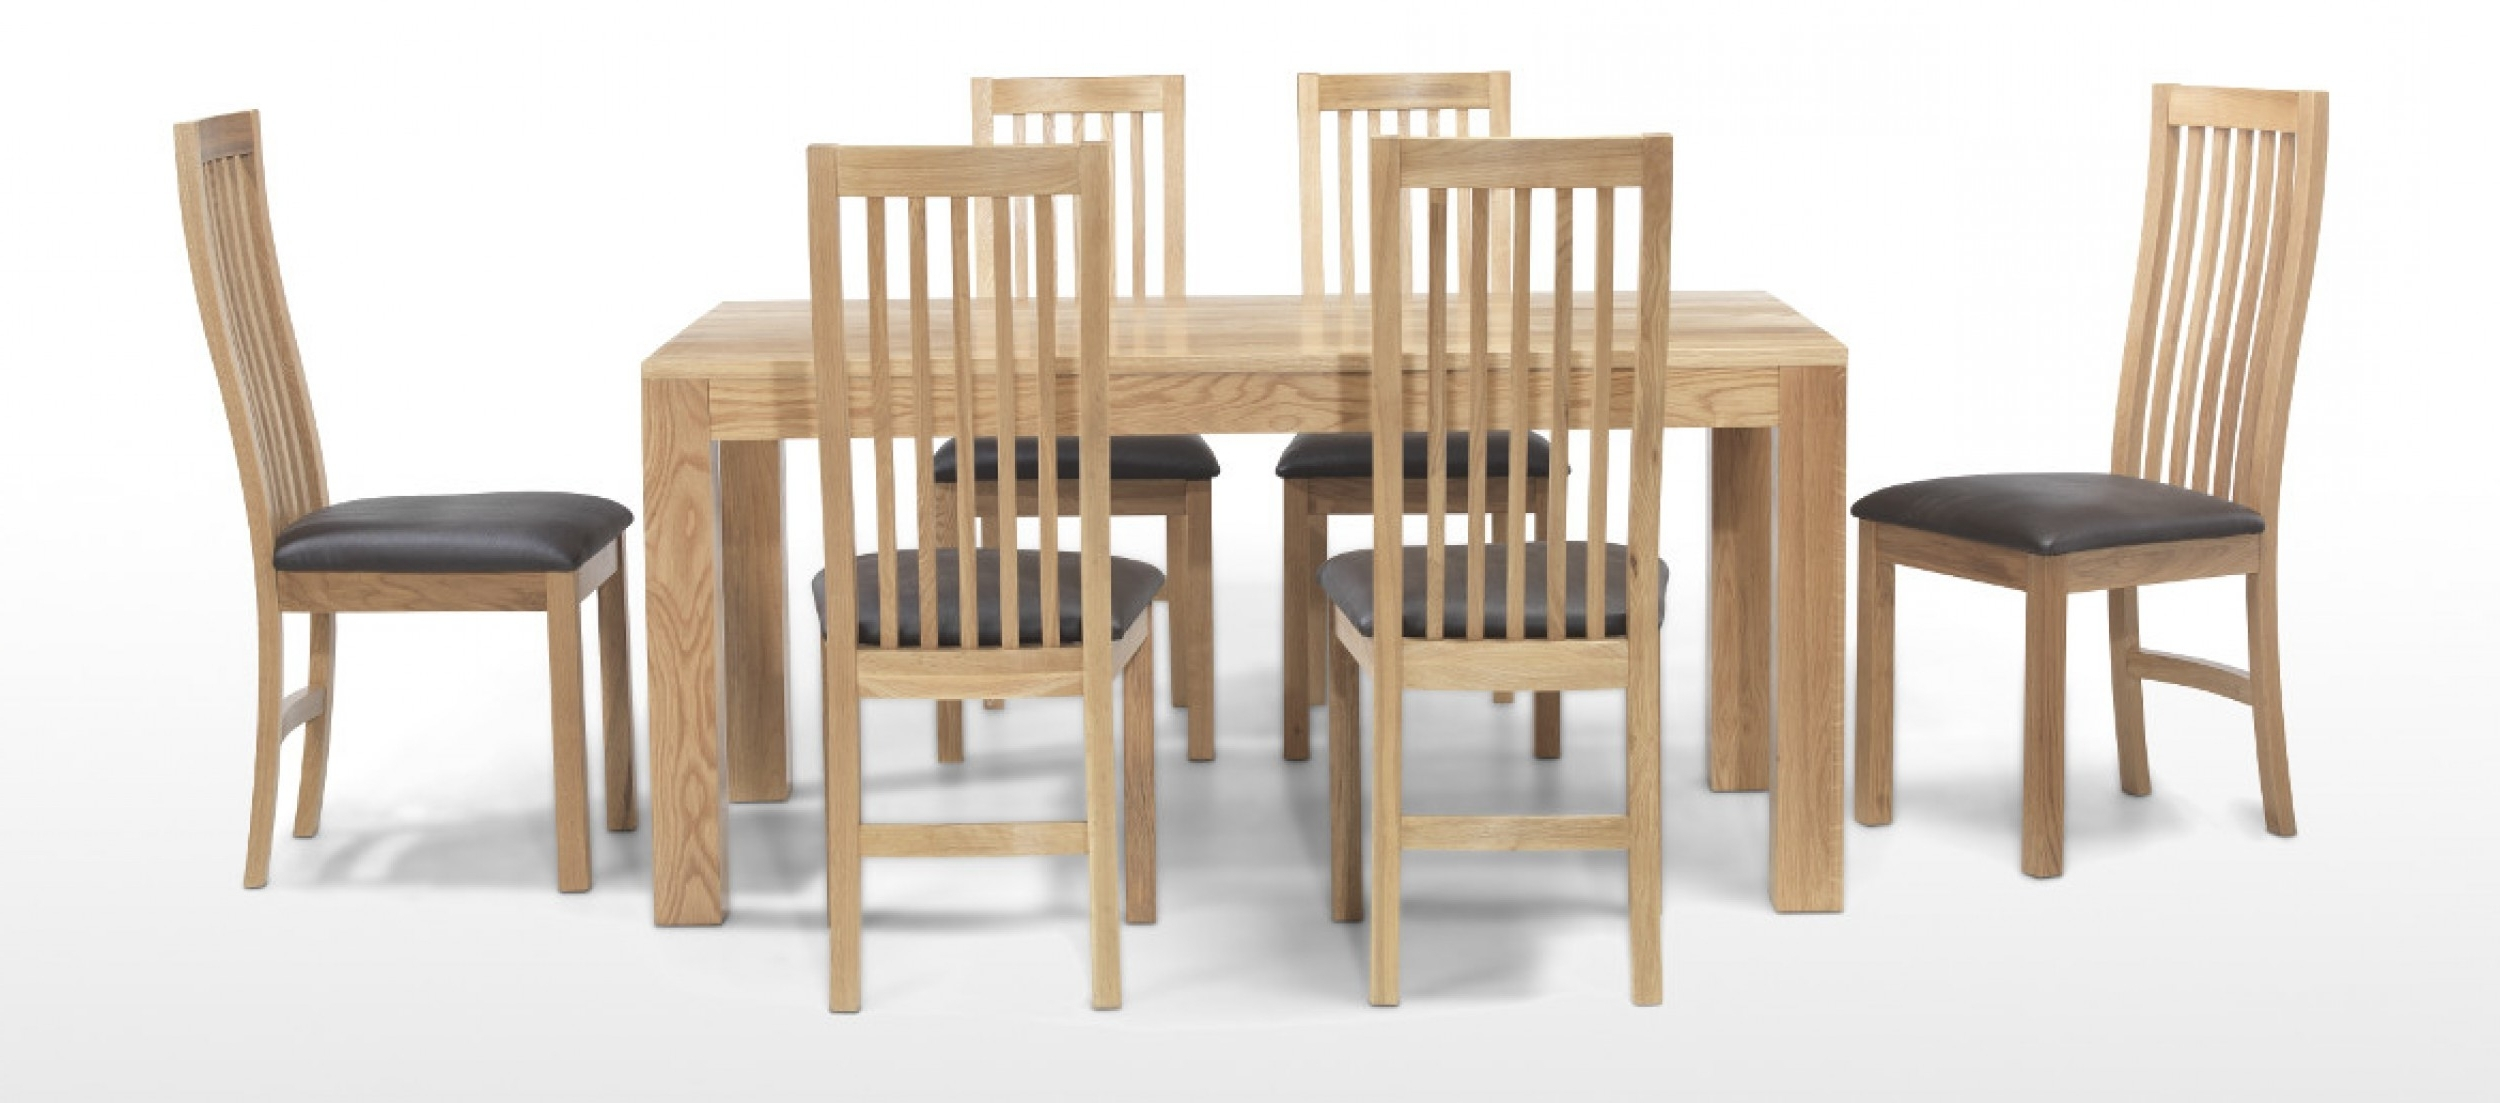 Quercus Living Intended For Current 6 Seat Dining Tables And Chairs (Gallery 21 of 25)